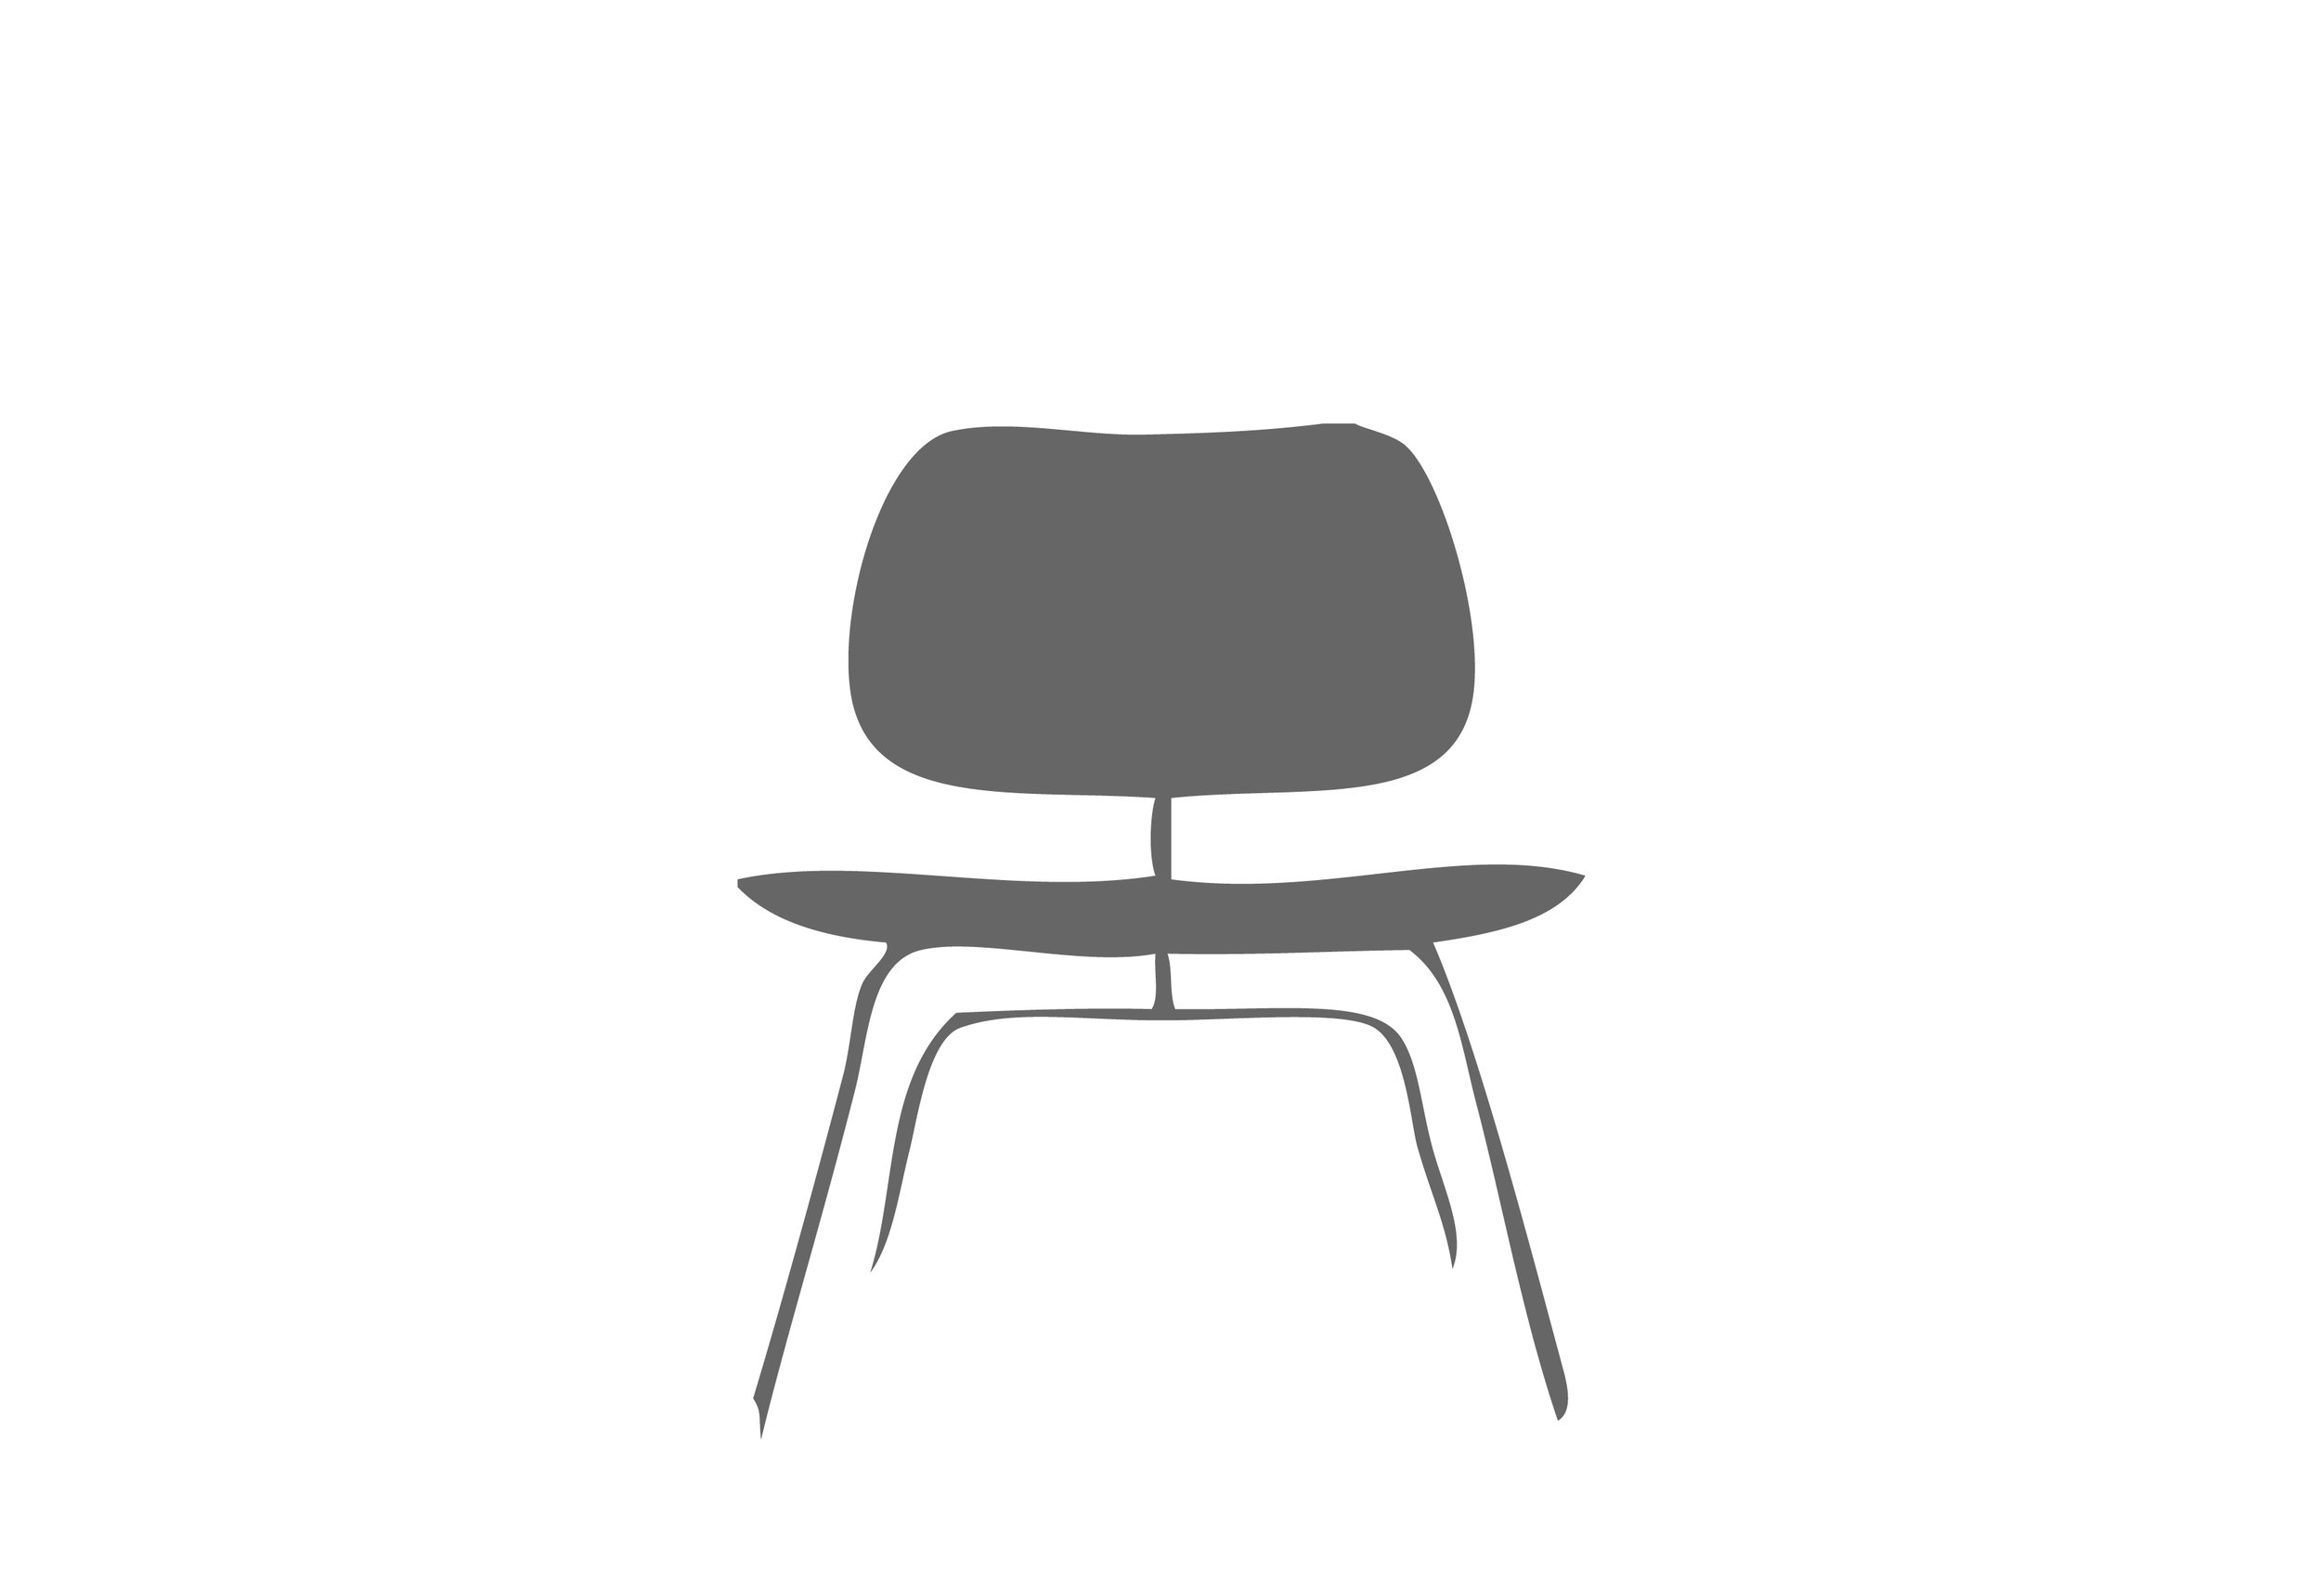 df_rental-landing_icons_2_seating-01.jpg